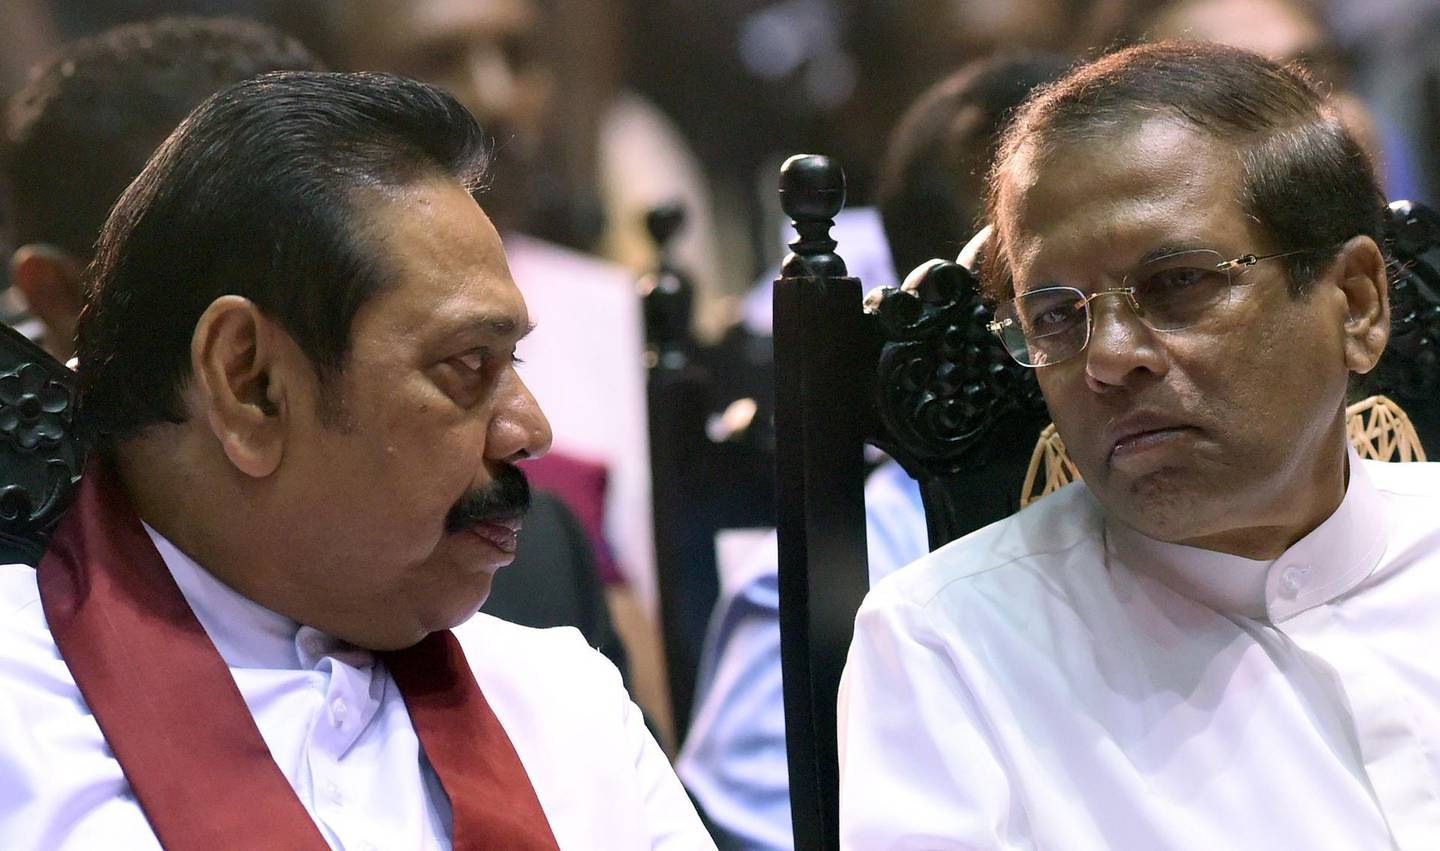 Sri Lanka's President Maithripala Sirisena (R) listens to former president and currently appointed Prime Minister Mahinda Rajapakse attend a ceremony granting employment to social service workers, in Colombo on November 30, 2018.  Rajapakse was controversially named prime minister last month, but the parliament has in two votes toppled him in no-confidence motions which he and Sirisena are refusing to accept causing a deepening political crisis. / AFP / ISHARA S.  KODIKARA